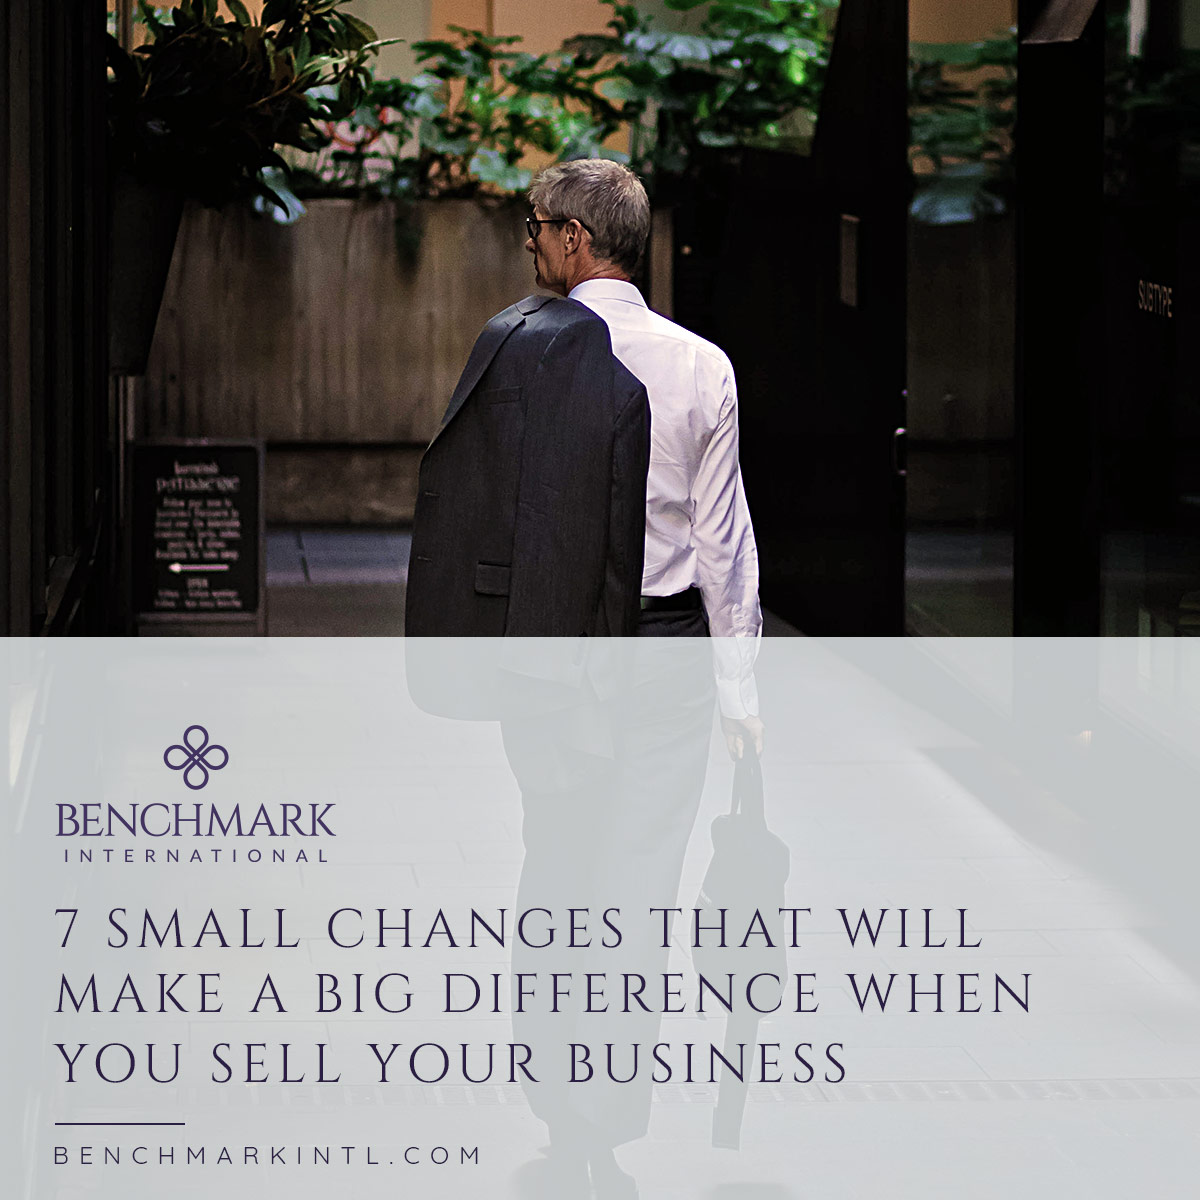 7-Small-Changes-That-Will-Make_A_Big_Difference_When_You_Sell_Your_Business-_Social